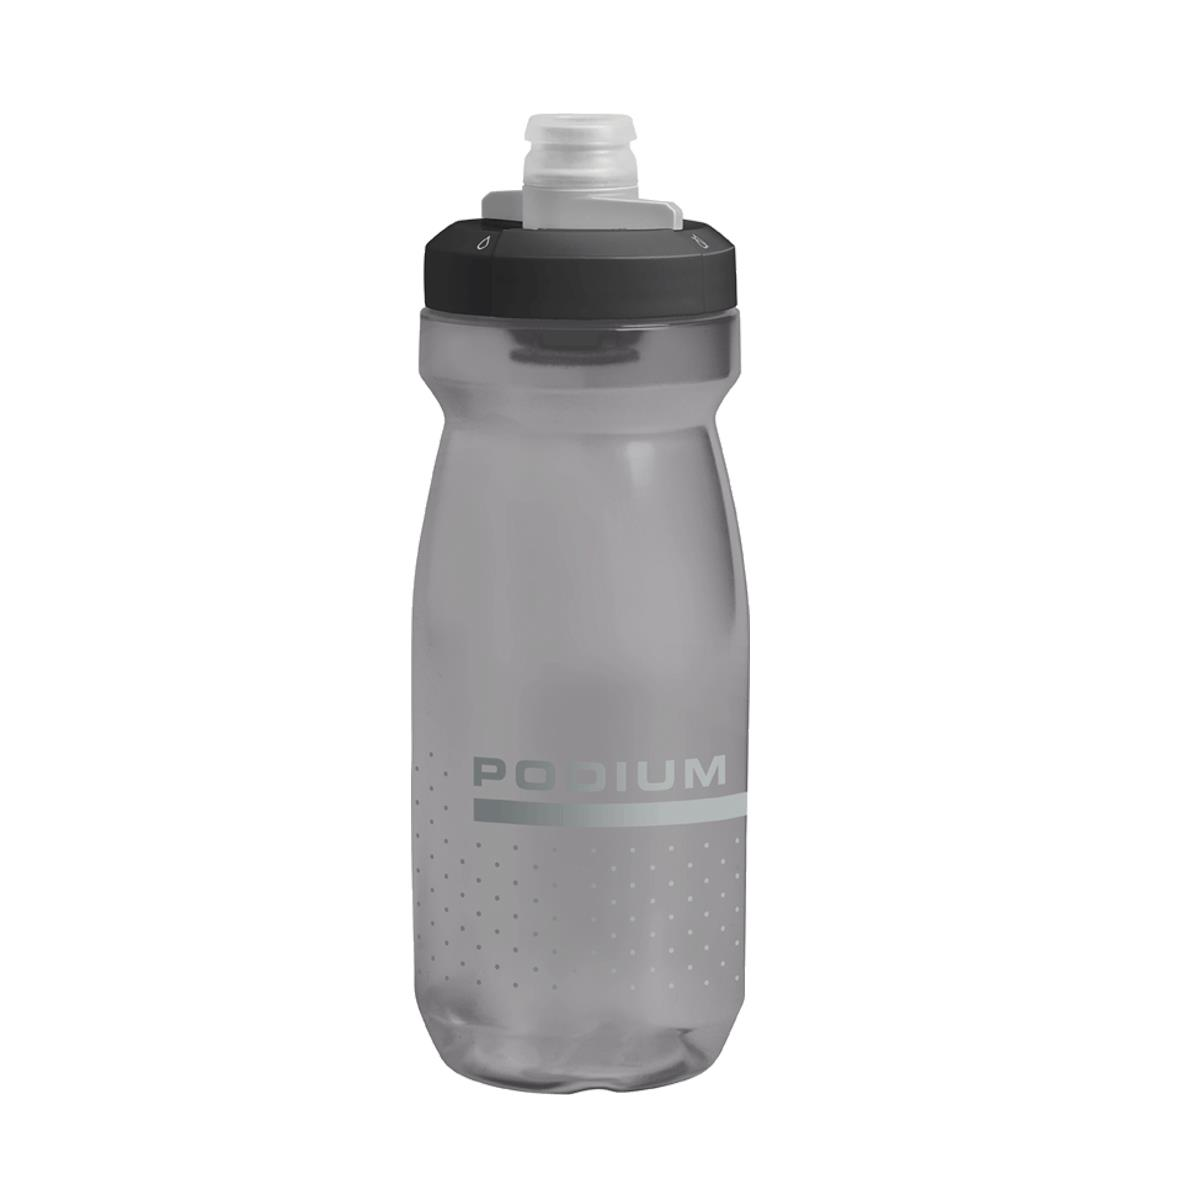 Camelbak Podium Water Bottle - 2019 Model | Drikkedunke